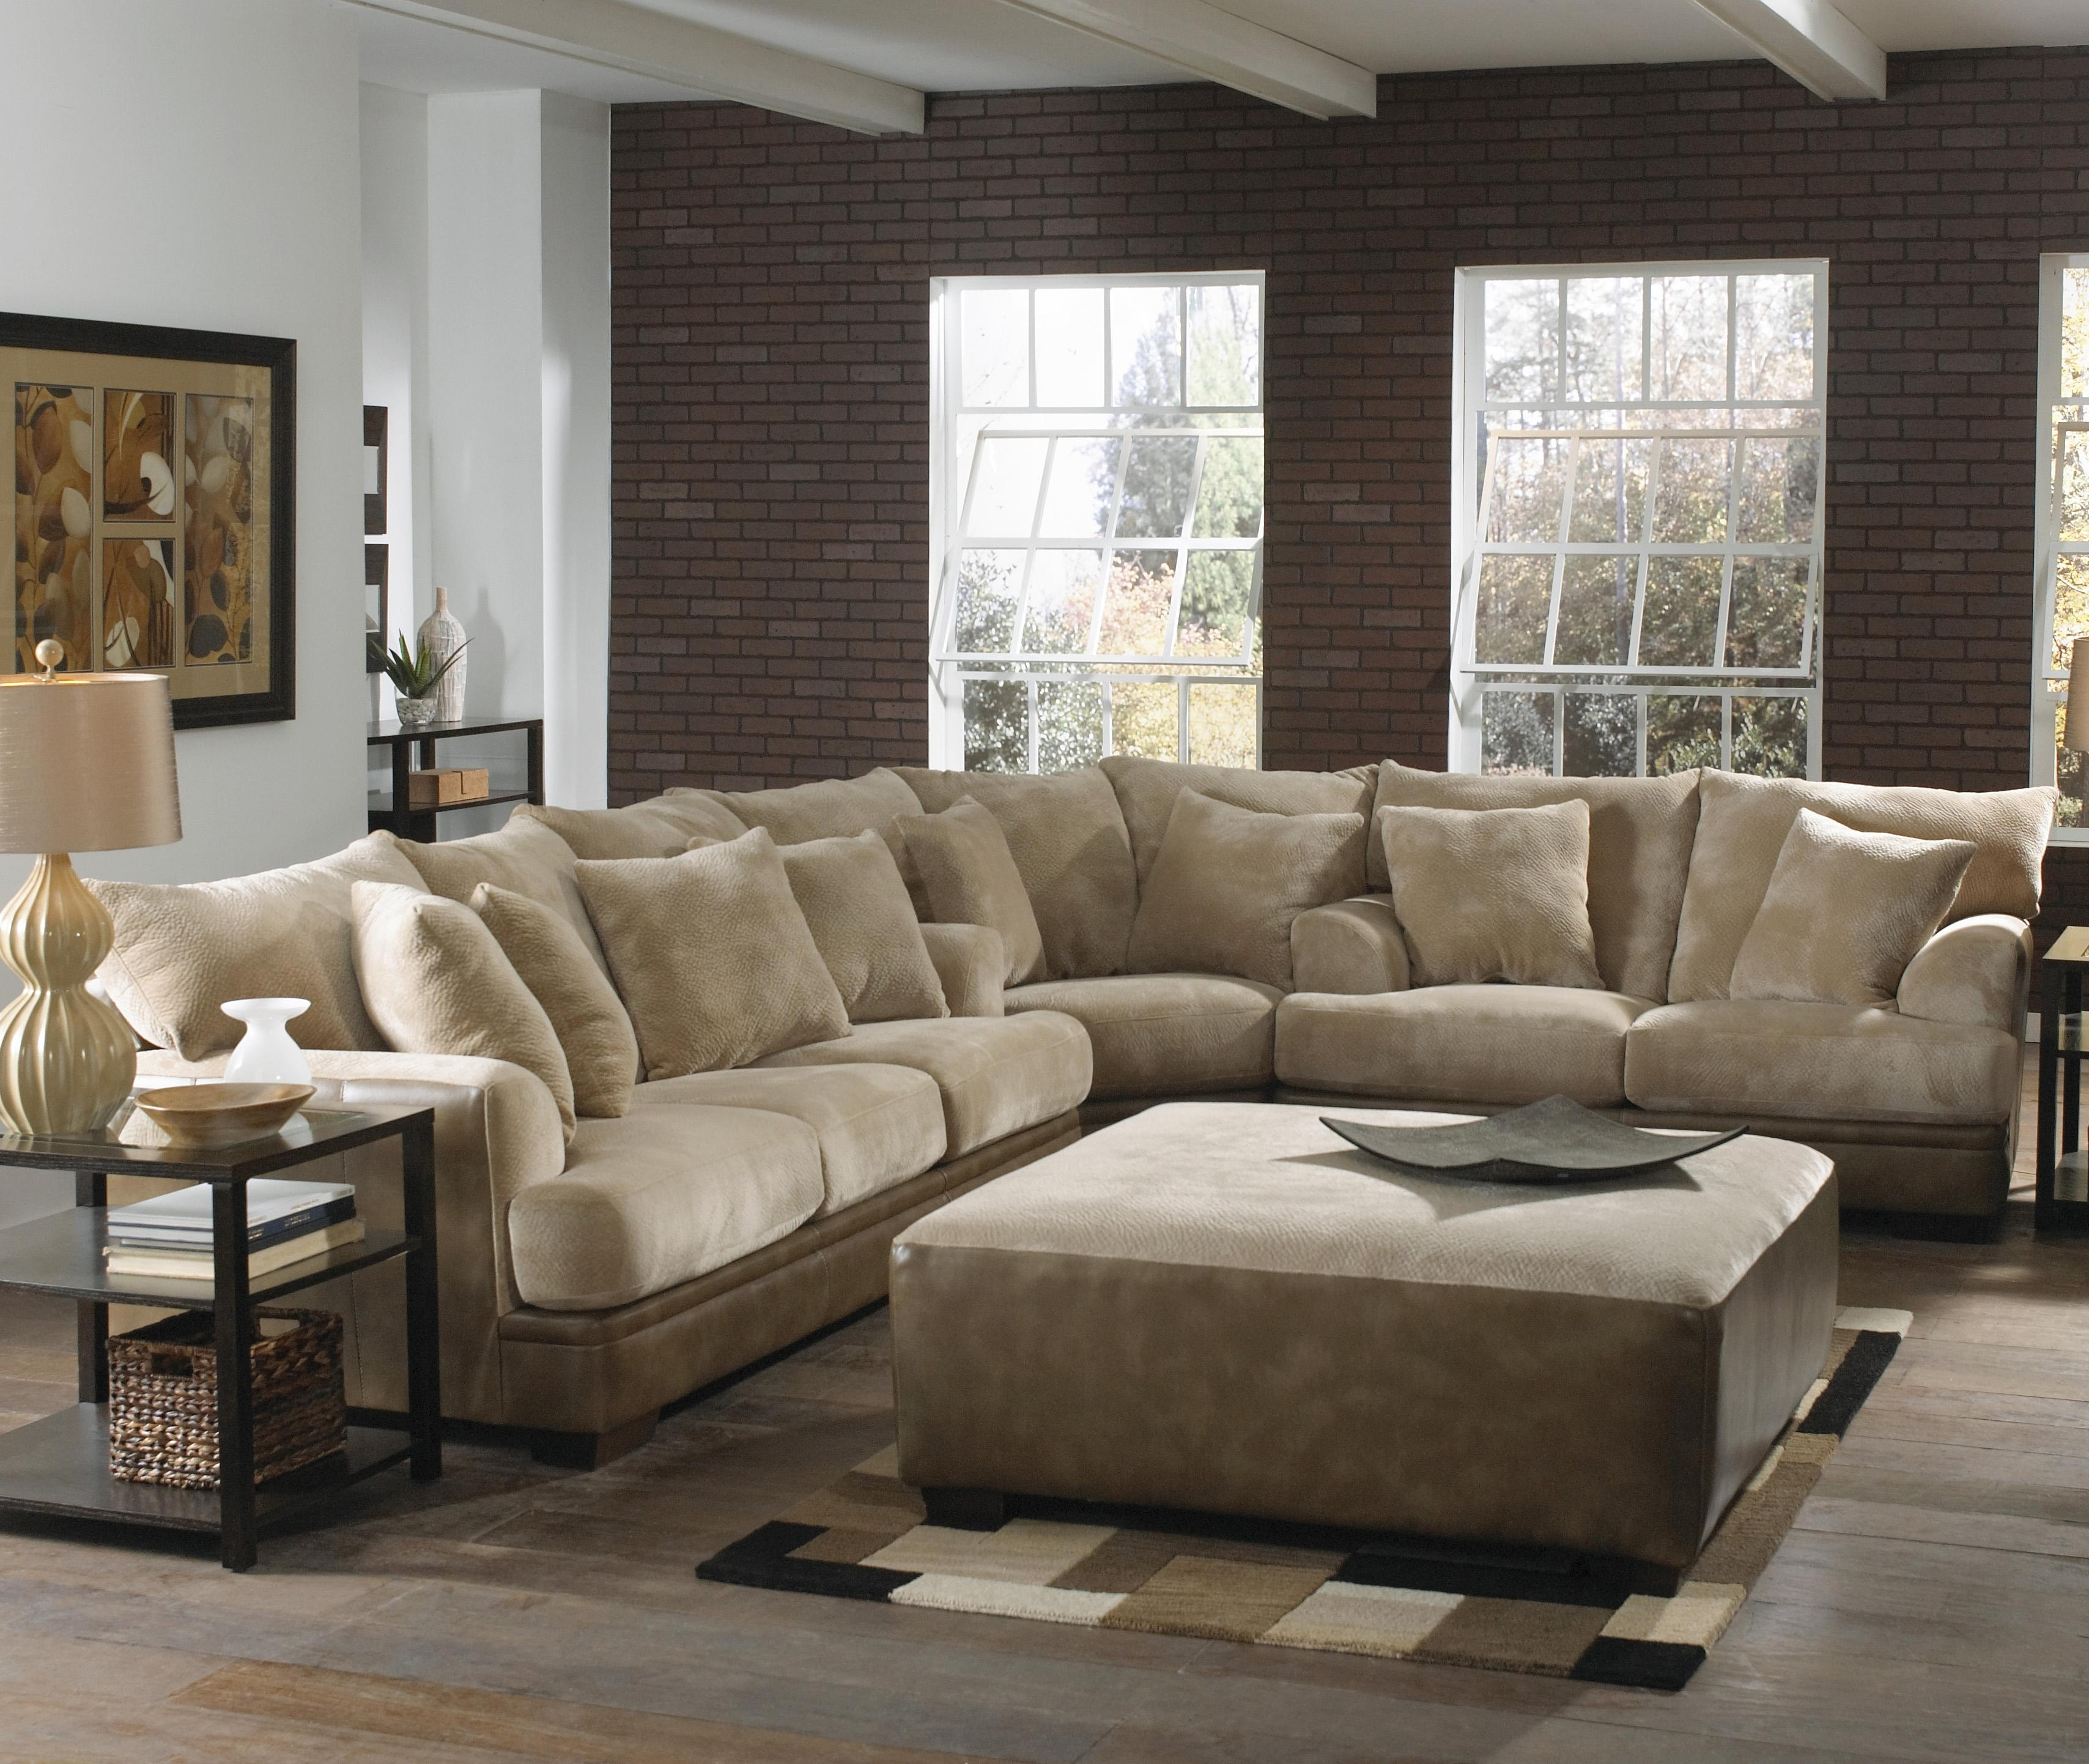 Widely Used Huge Sofas Inside Sofa Best Ideas Of Huge Sofas Oversized Sectional Sleeper Cheap (View 20 of 20)